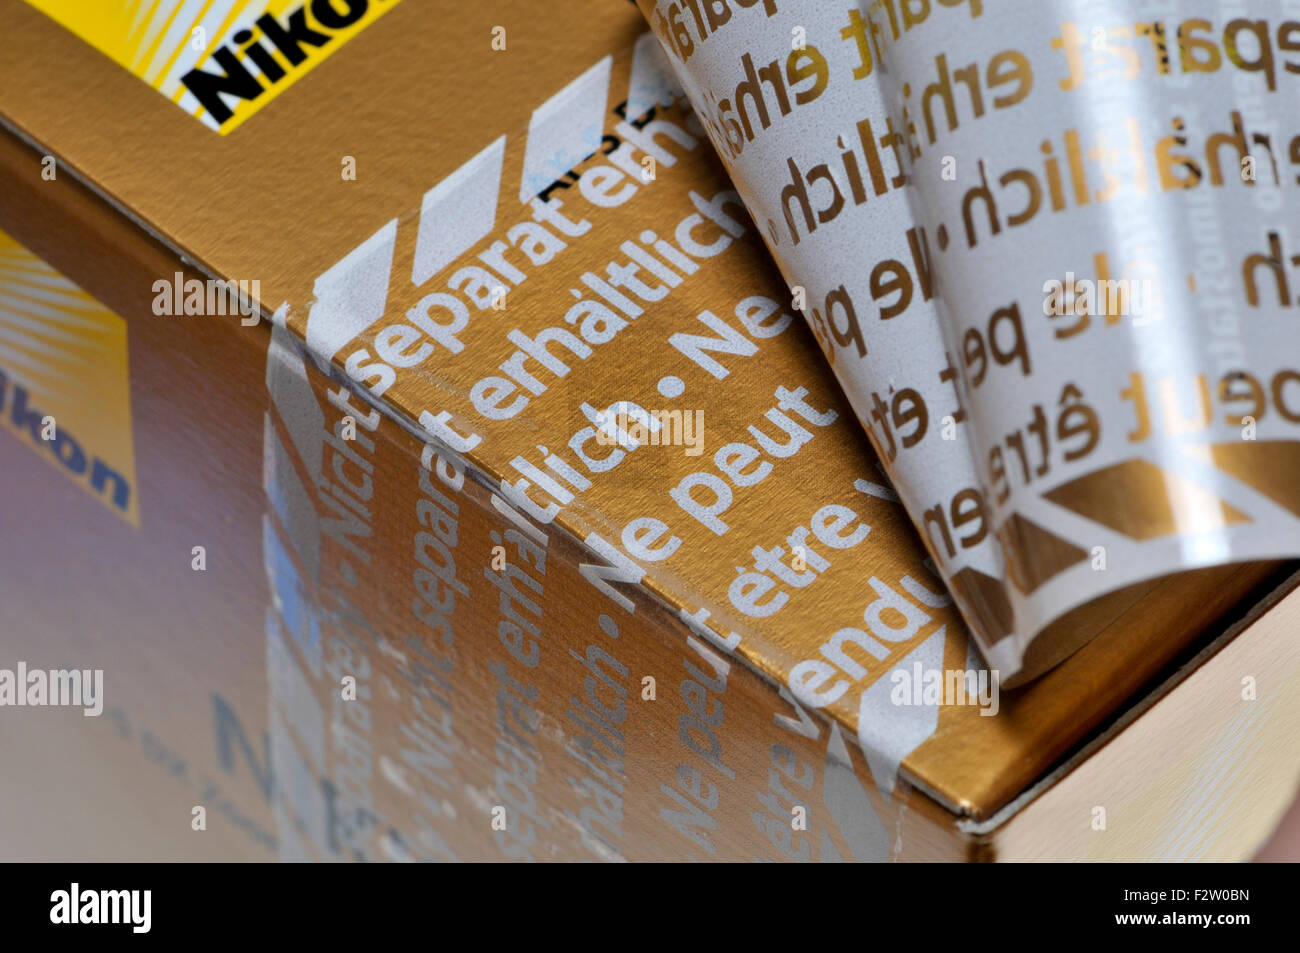 Tamper-proof security tape on the packaging of a new Nikon lens - Stock Image